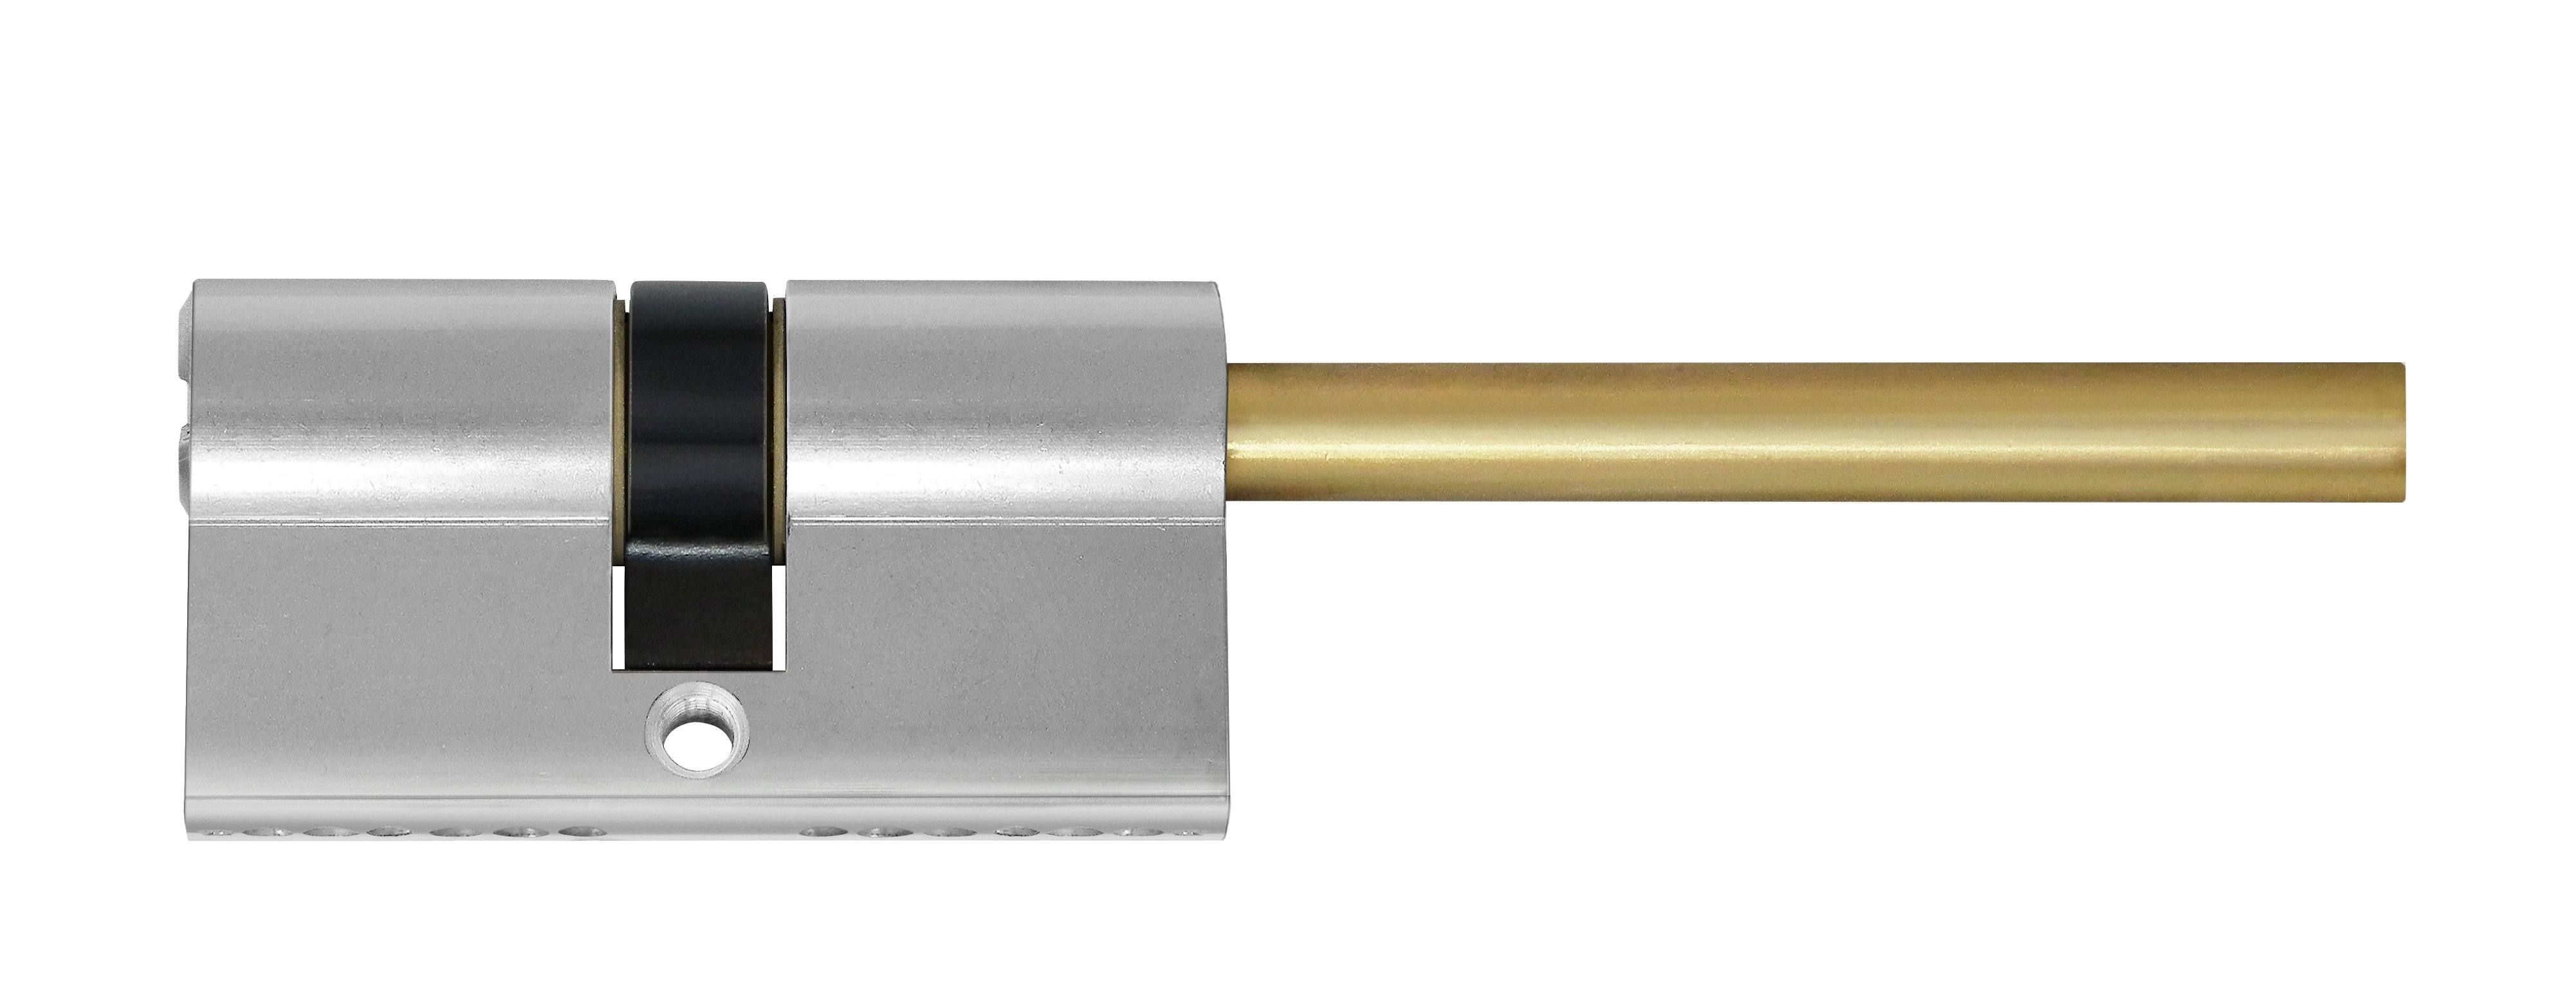 Euro profile cylinder special axle